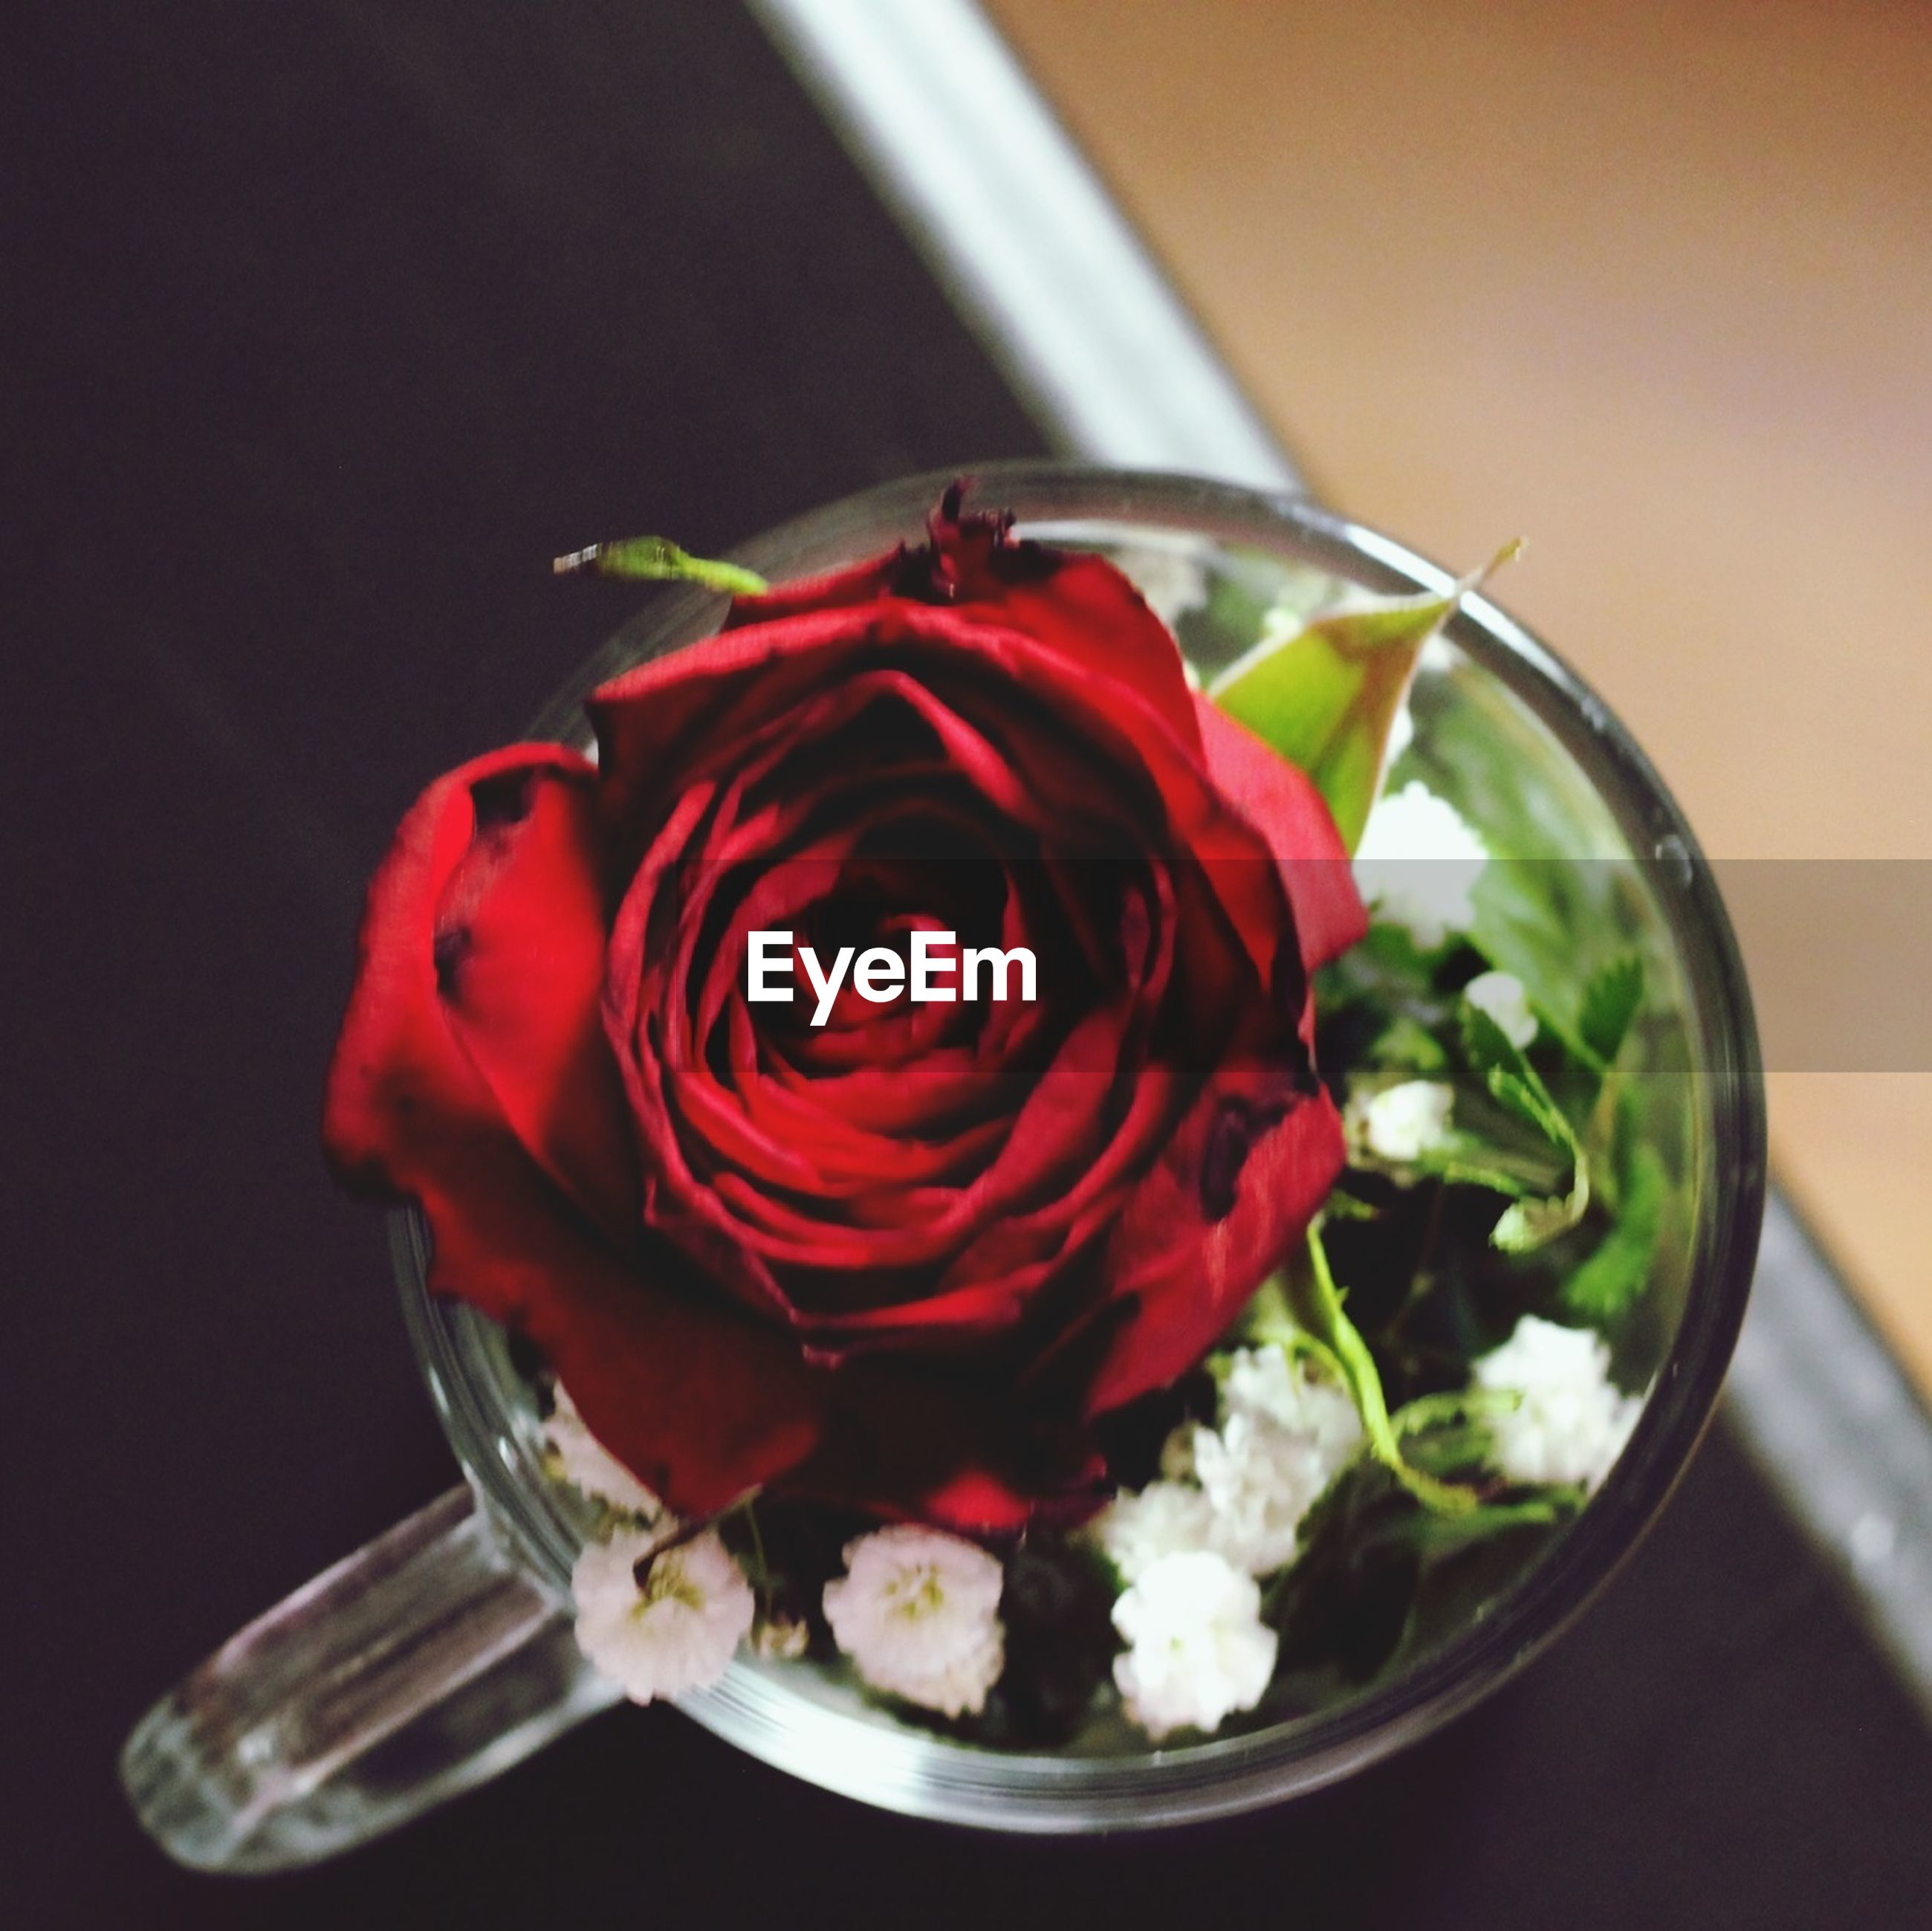 freshness, flower, indoors, table, red, petal, close-up, rose - flower, fragility, still life, vase, flower head, food and drink, pink color, high angle view, decoration, rose, bouquet, no people, bunch of flowers